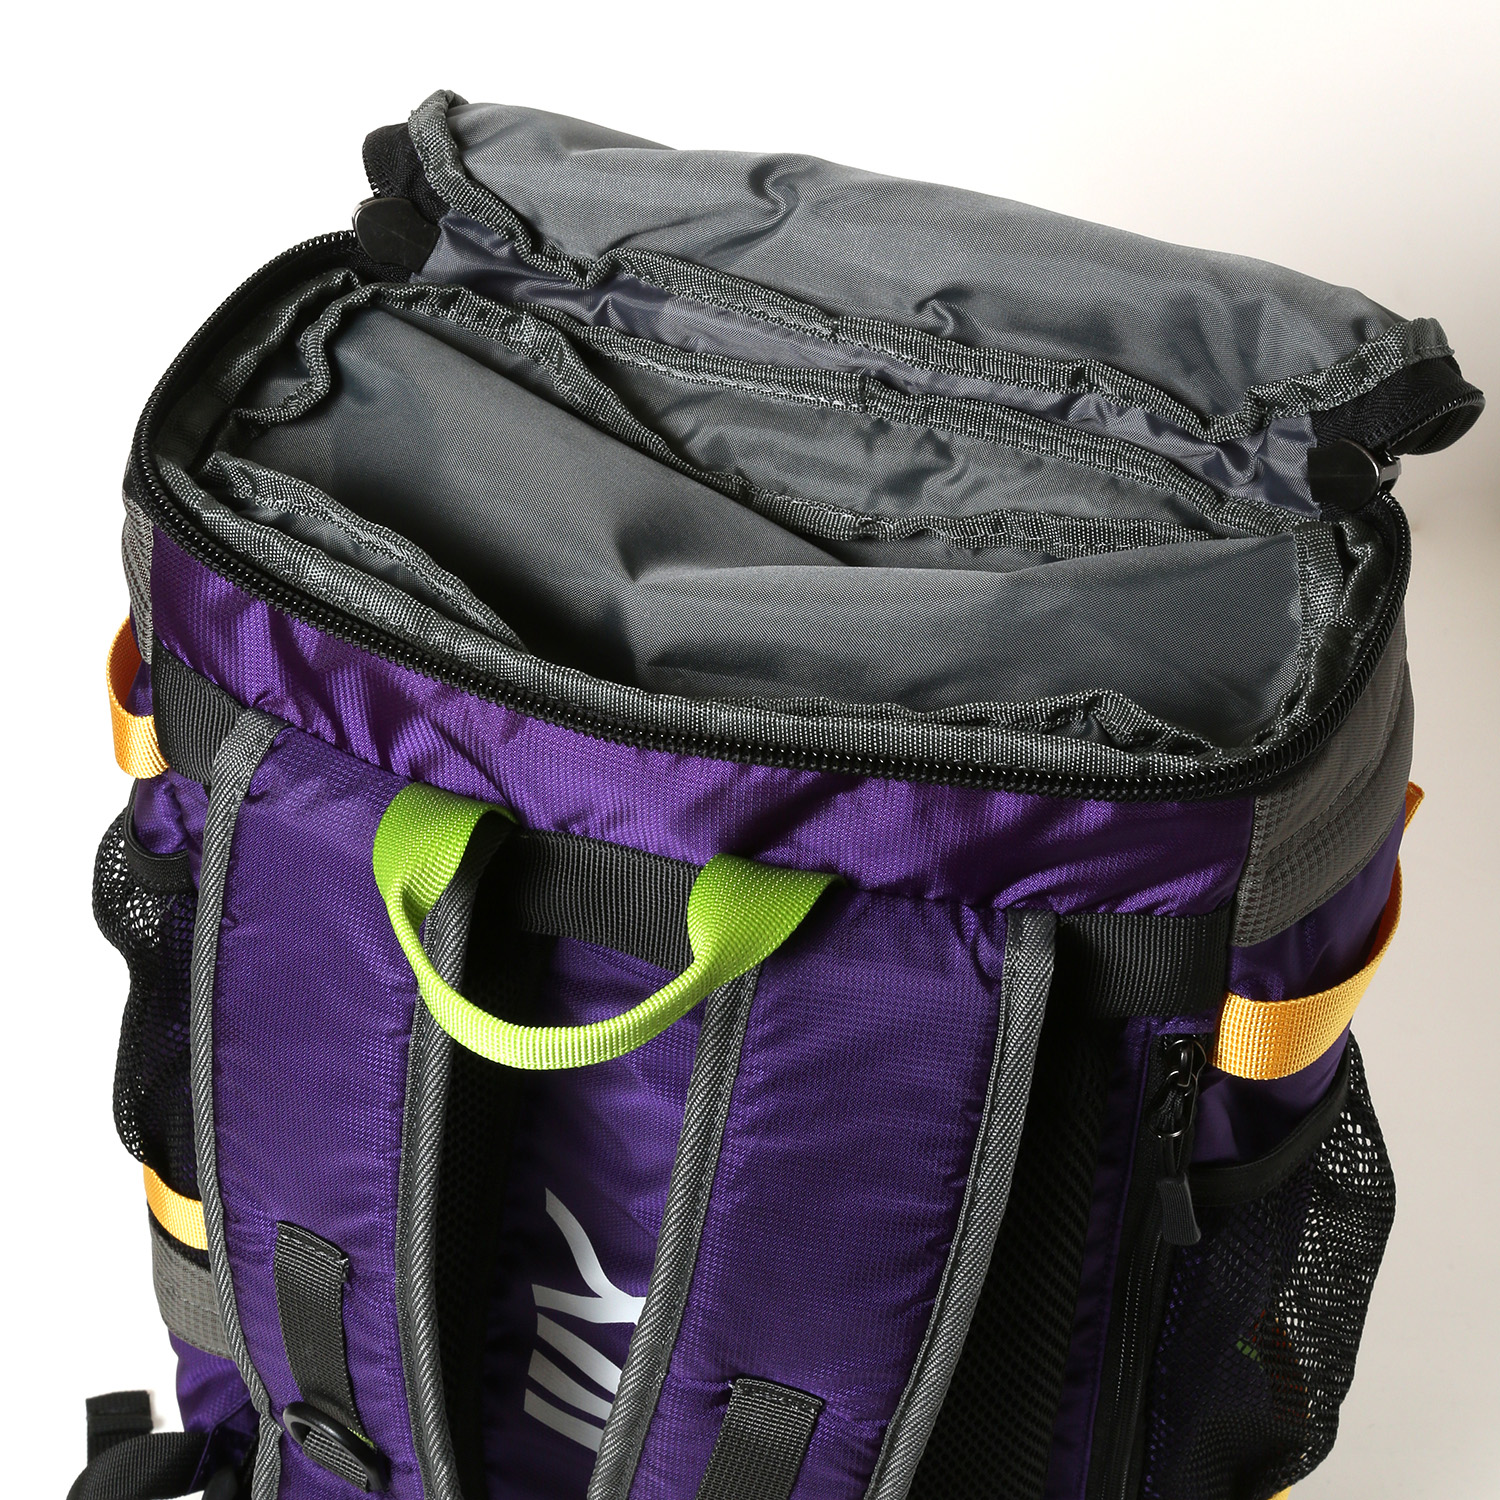 EVANGELION ABOVE ROUND BACK PACK by FIRE FIRST (EVA-13 MDOEL)